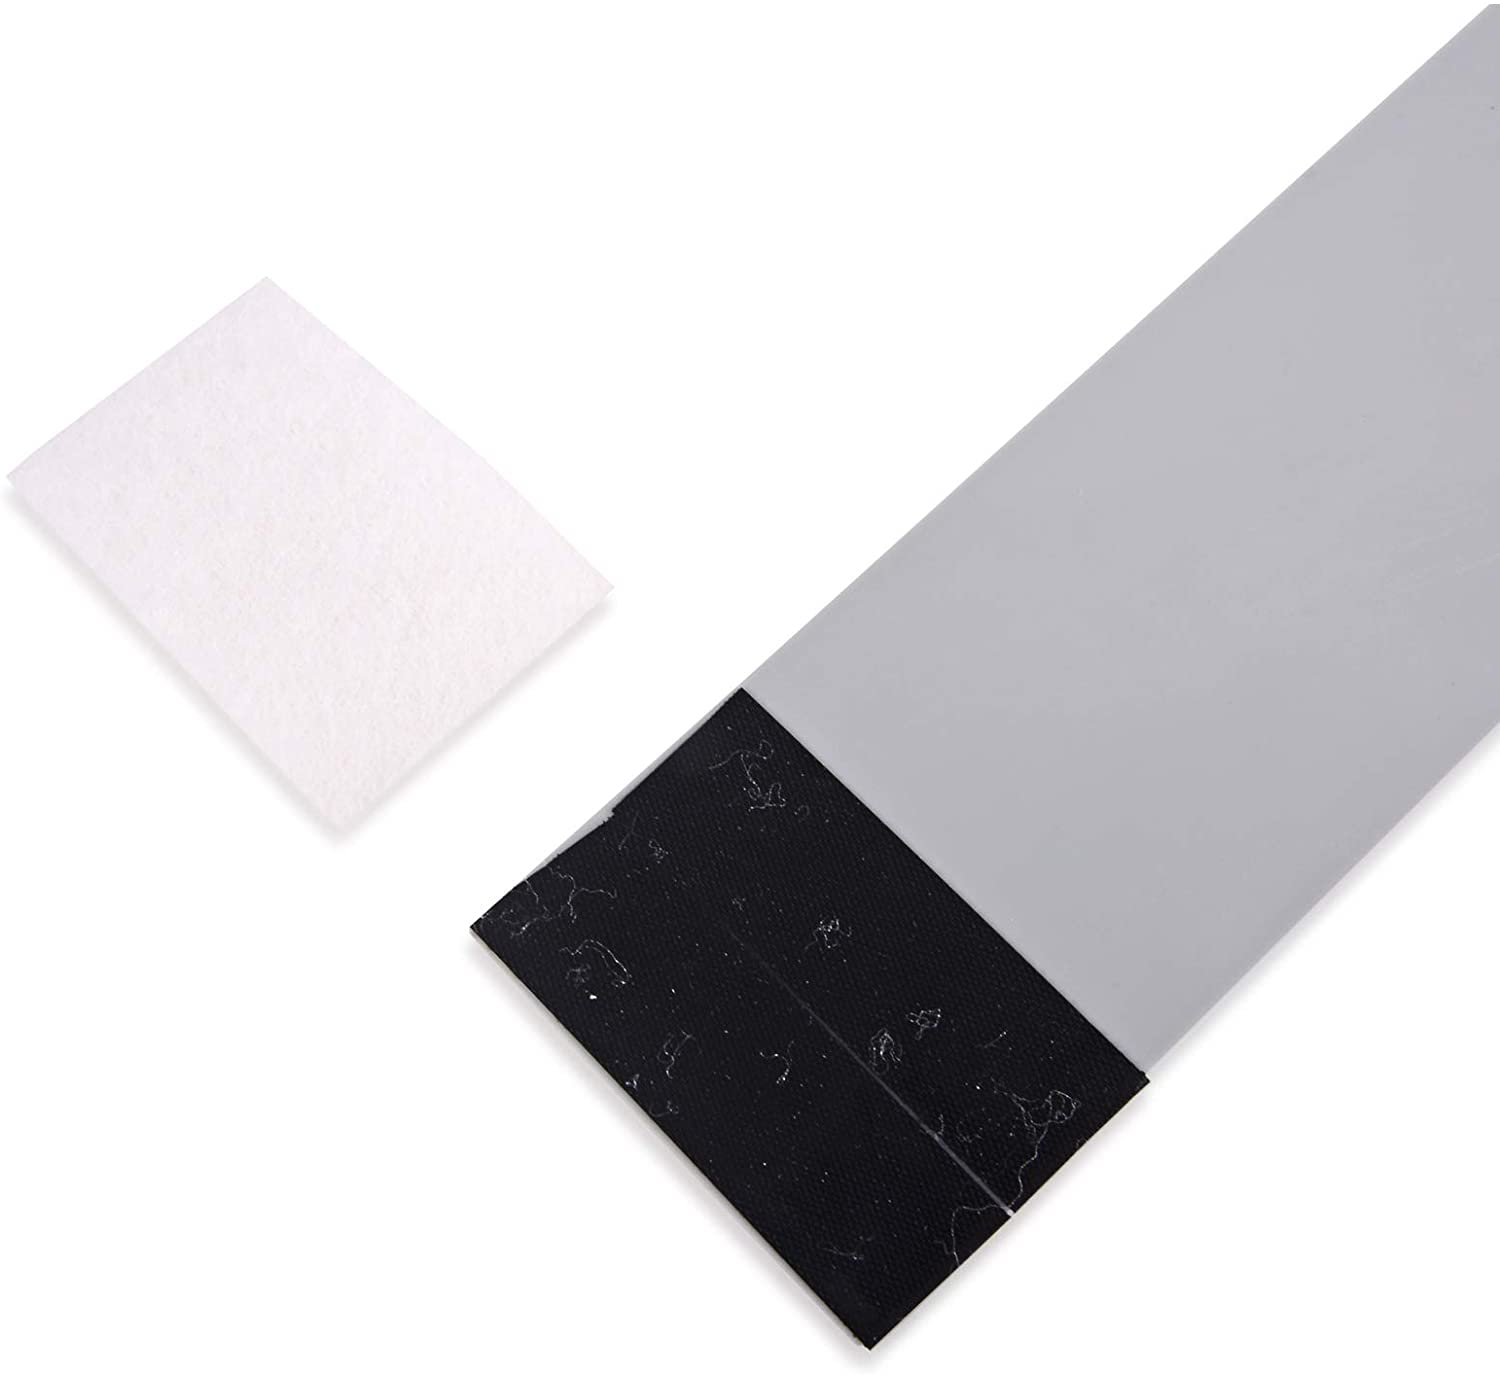 AE-79W10pc 10 Pack White Scrubby Replacement Pads for Long Handle Paddle Scraper Window Film Tinting Tool - AE QUALITY FILM